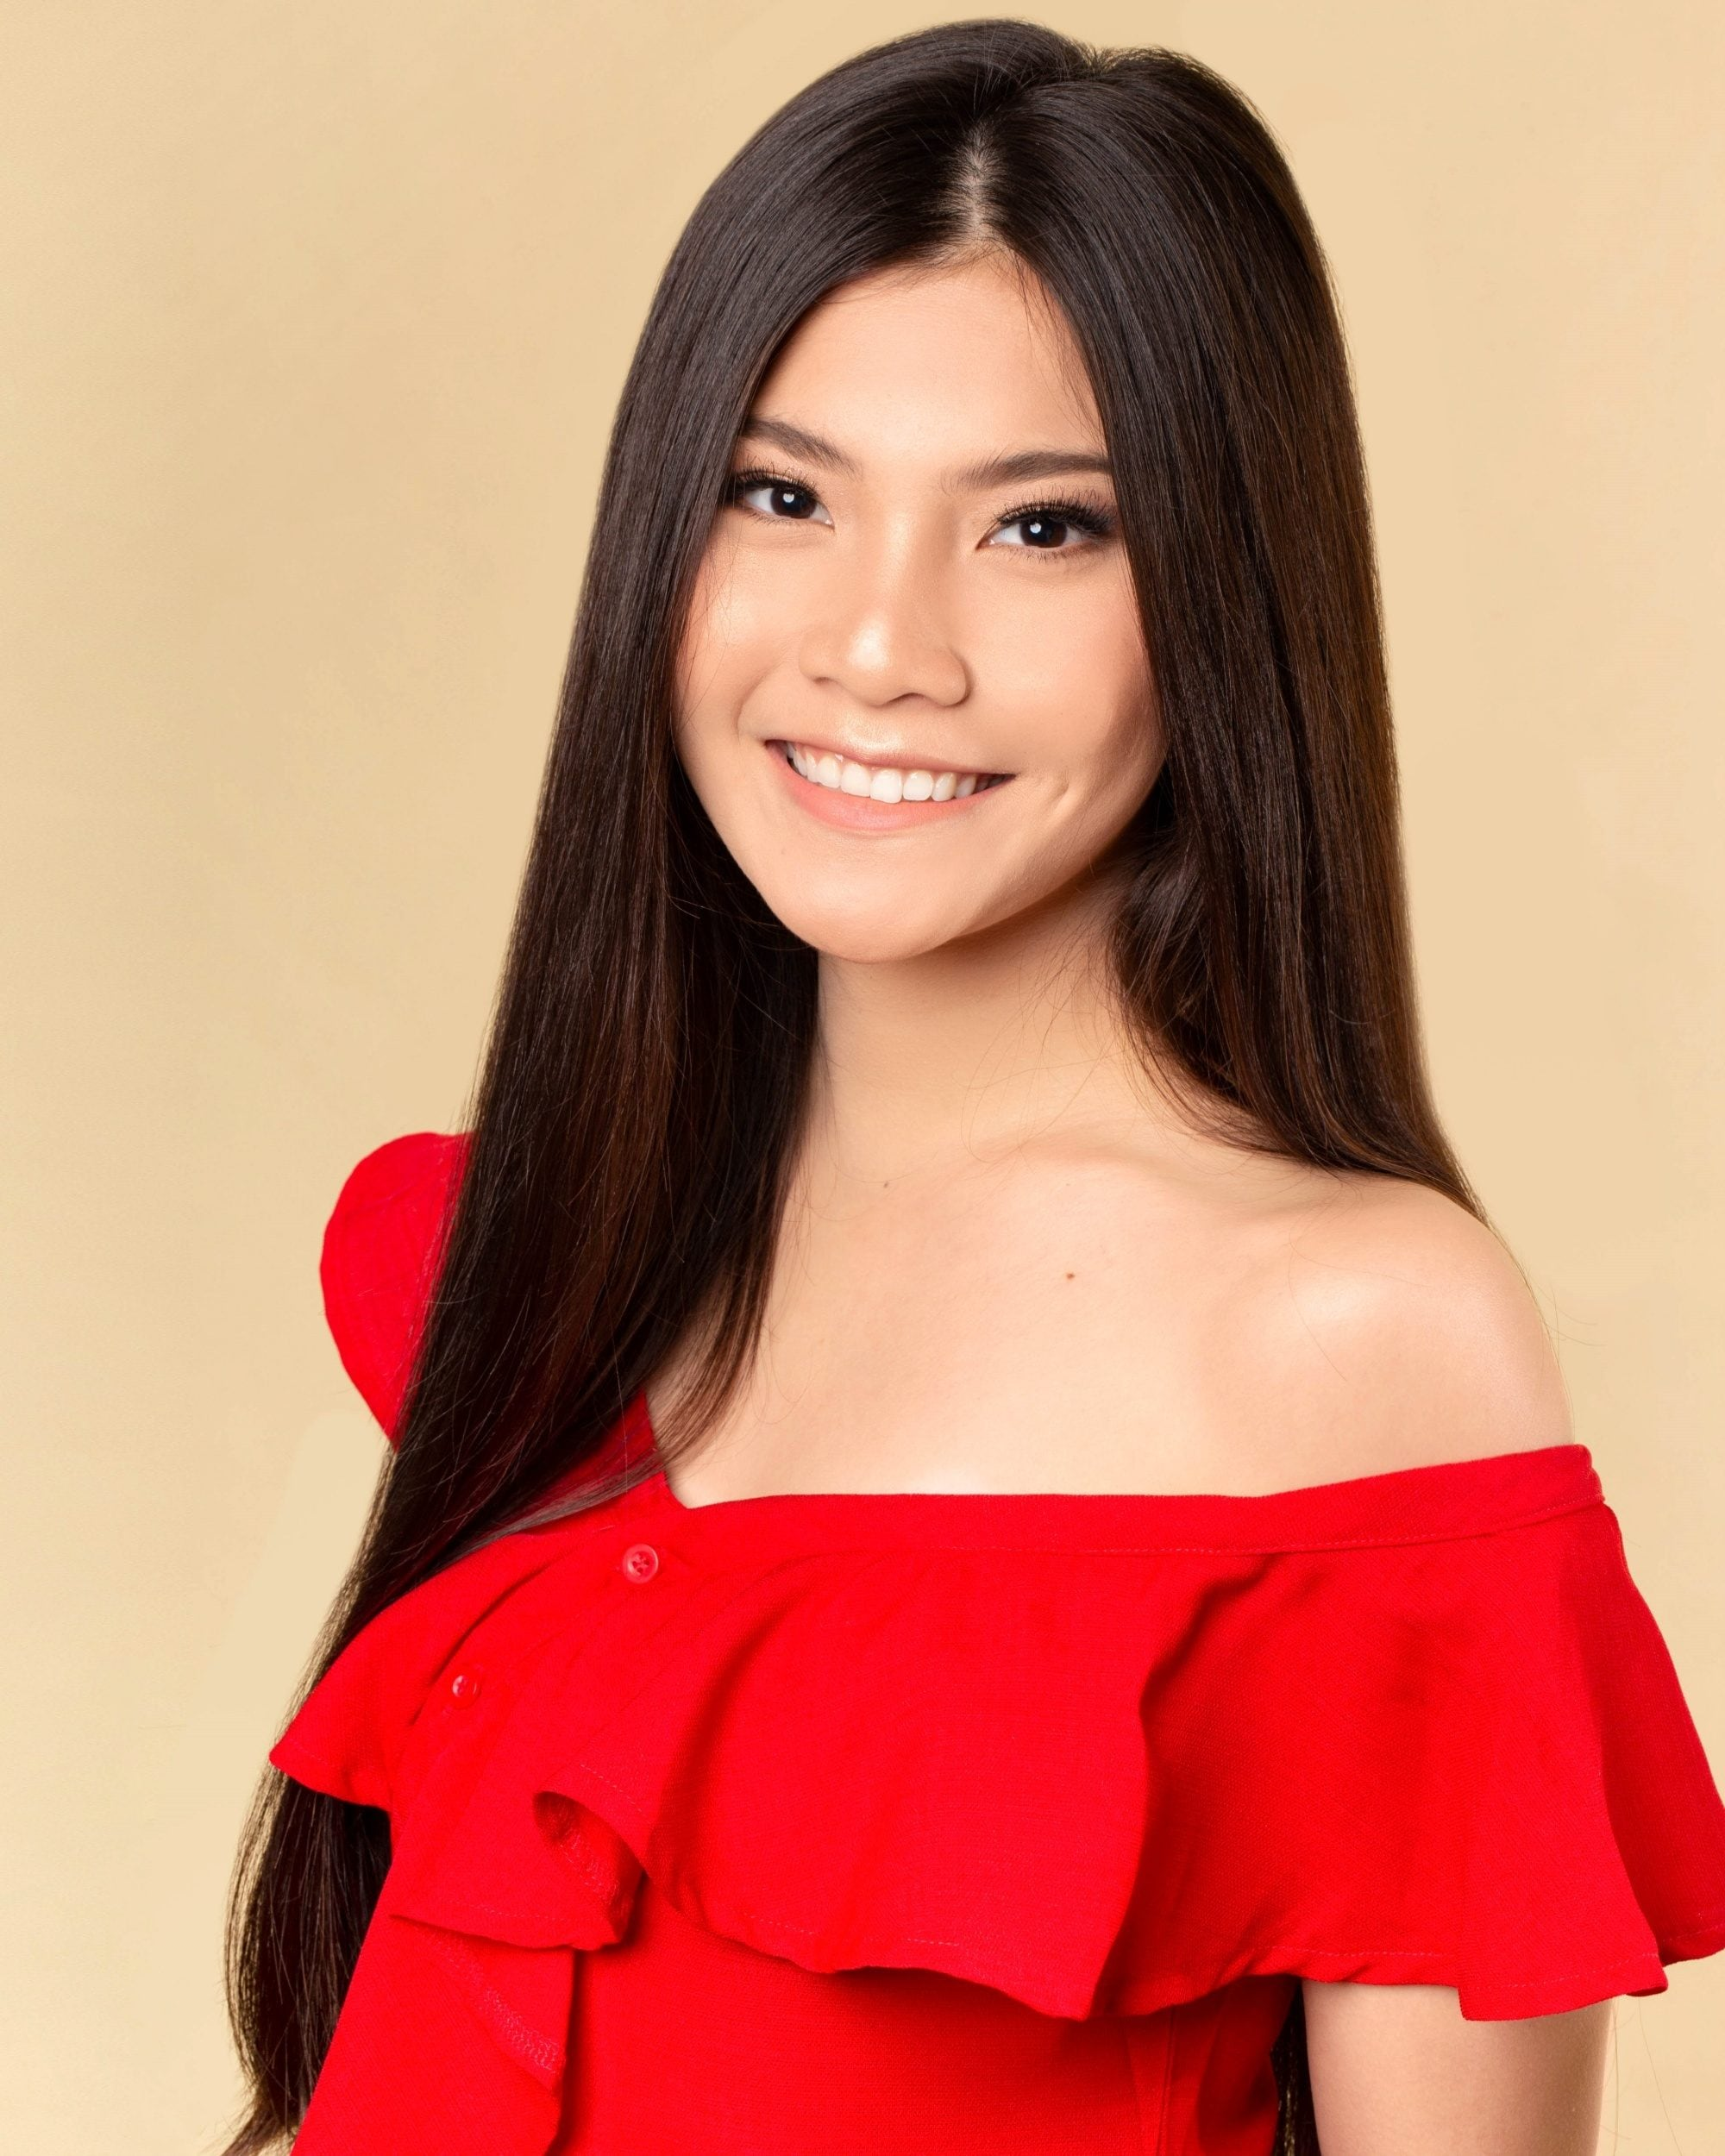 Asian woman with long dark brown straight hair wearing a red top